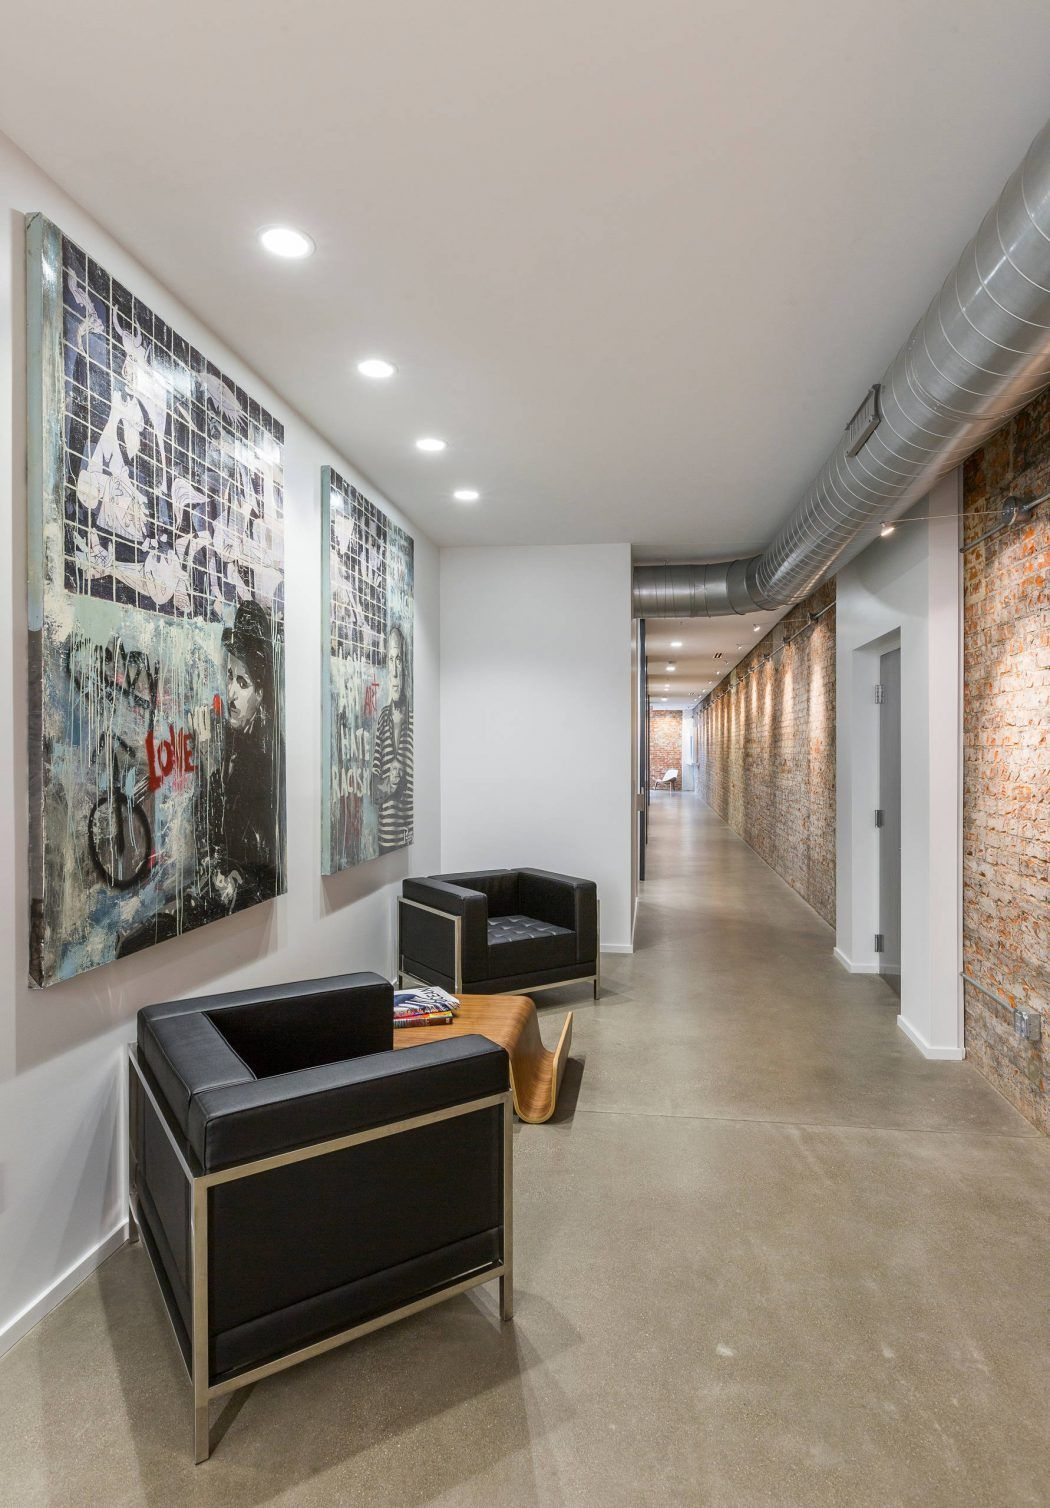 Loft Amenagement Interieur Mcalpin Loft By Ryan Duebber Architect Entrée Et Couloir Entry